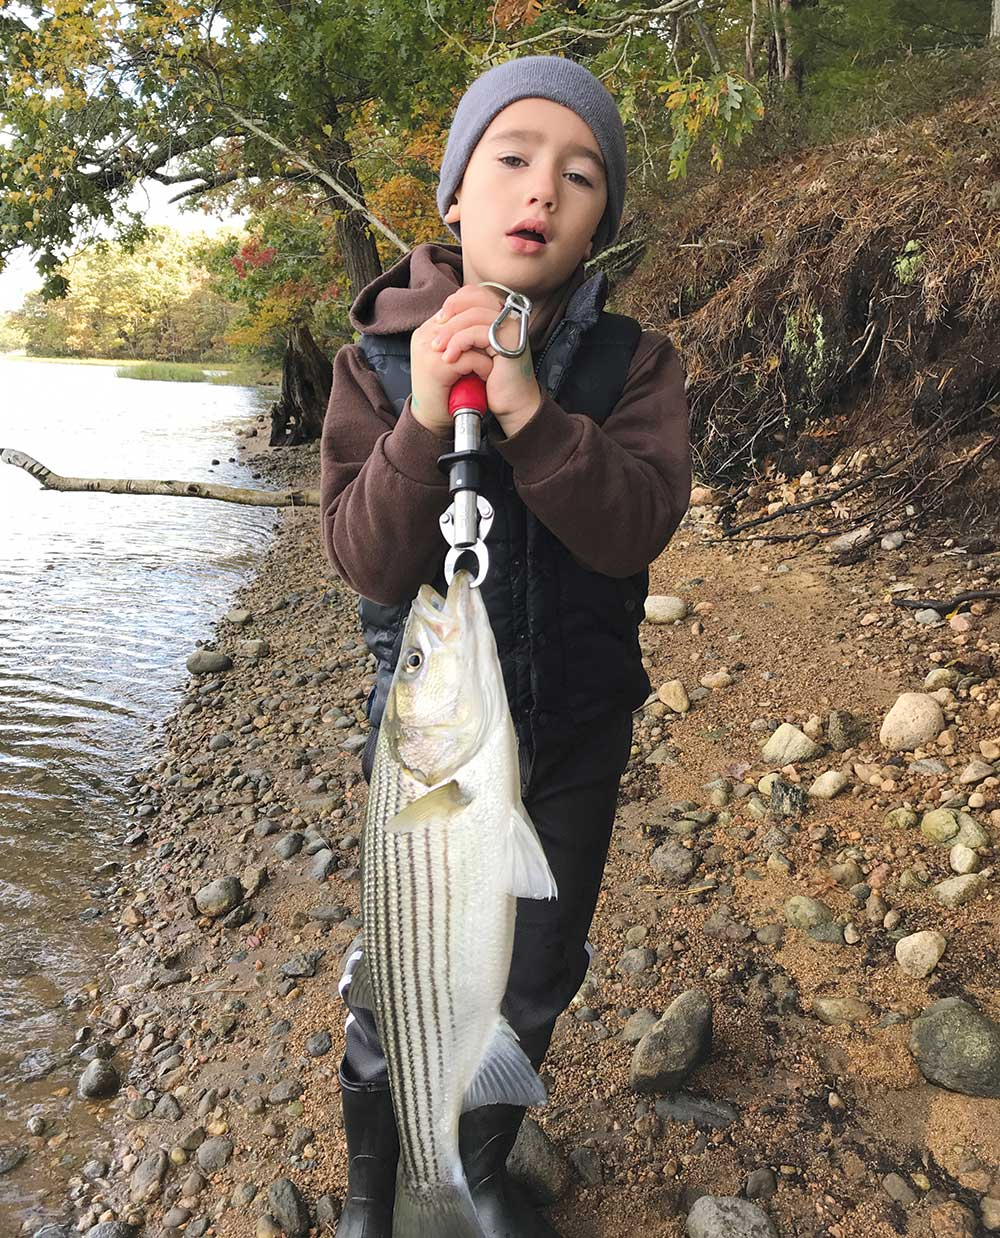 Early spring stripers are generally sub-legal in New England